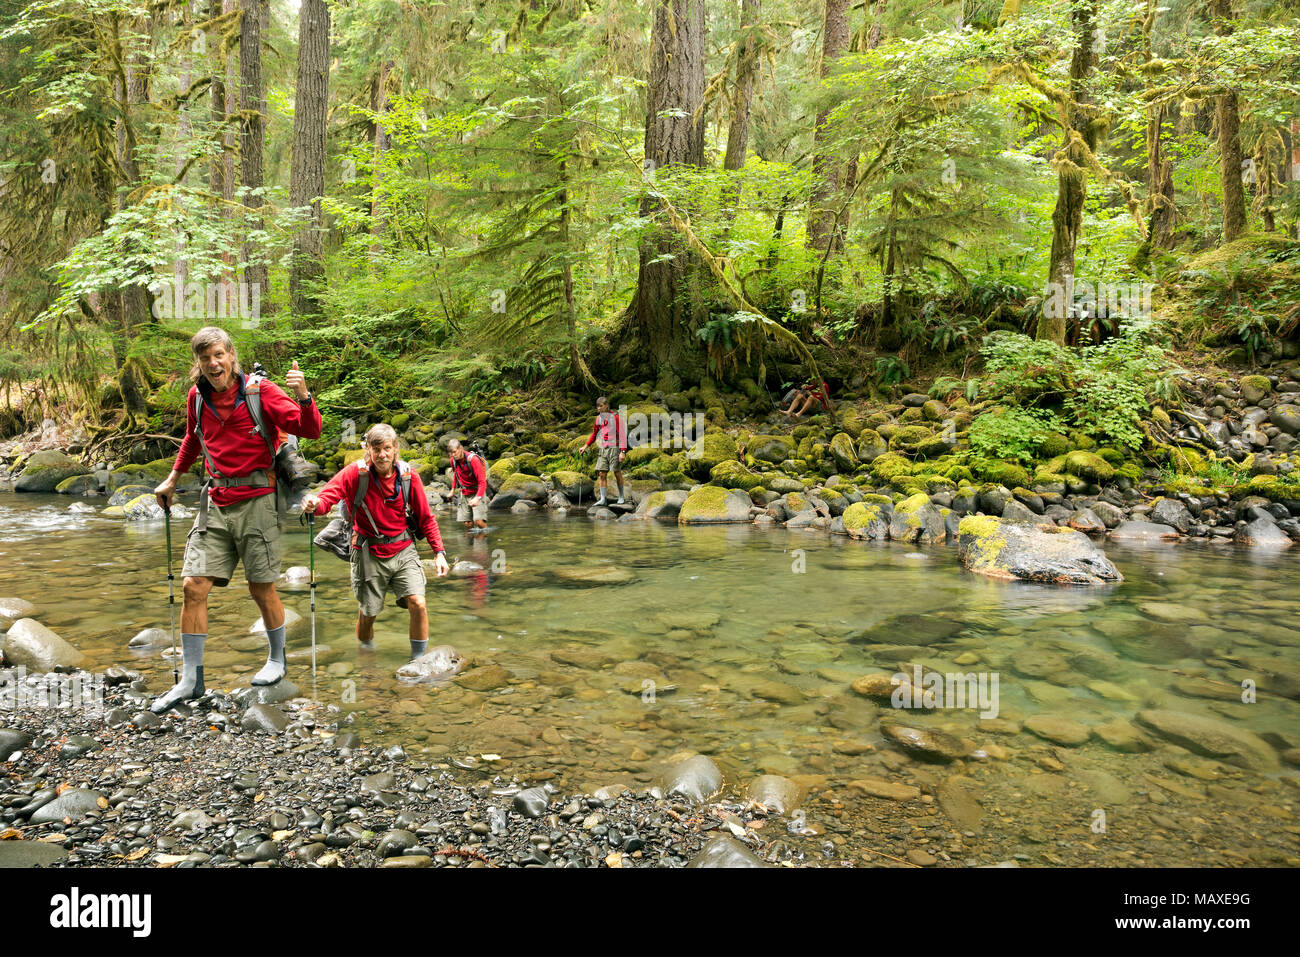 WA15023-00...WASHINGTON - Tom Kirkendall fording the North Fork of the Solduc River while following a semi-abandoned trail in Olympic National Park. - Stock Image